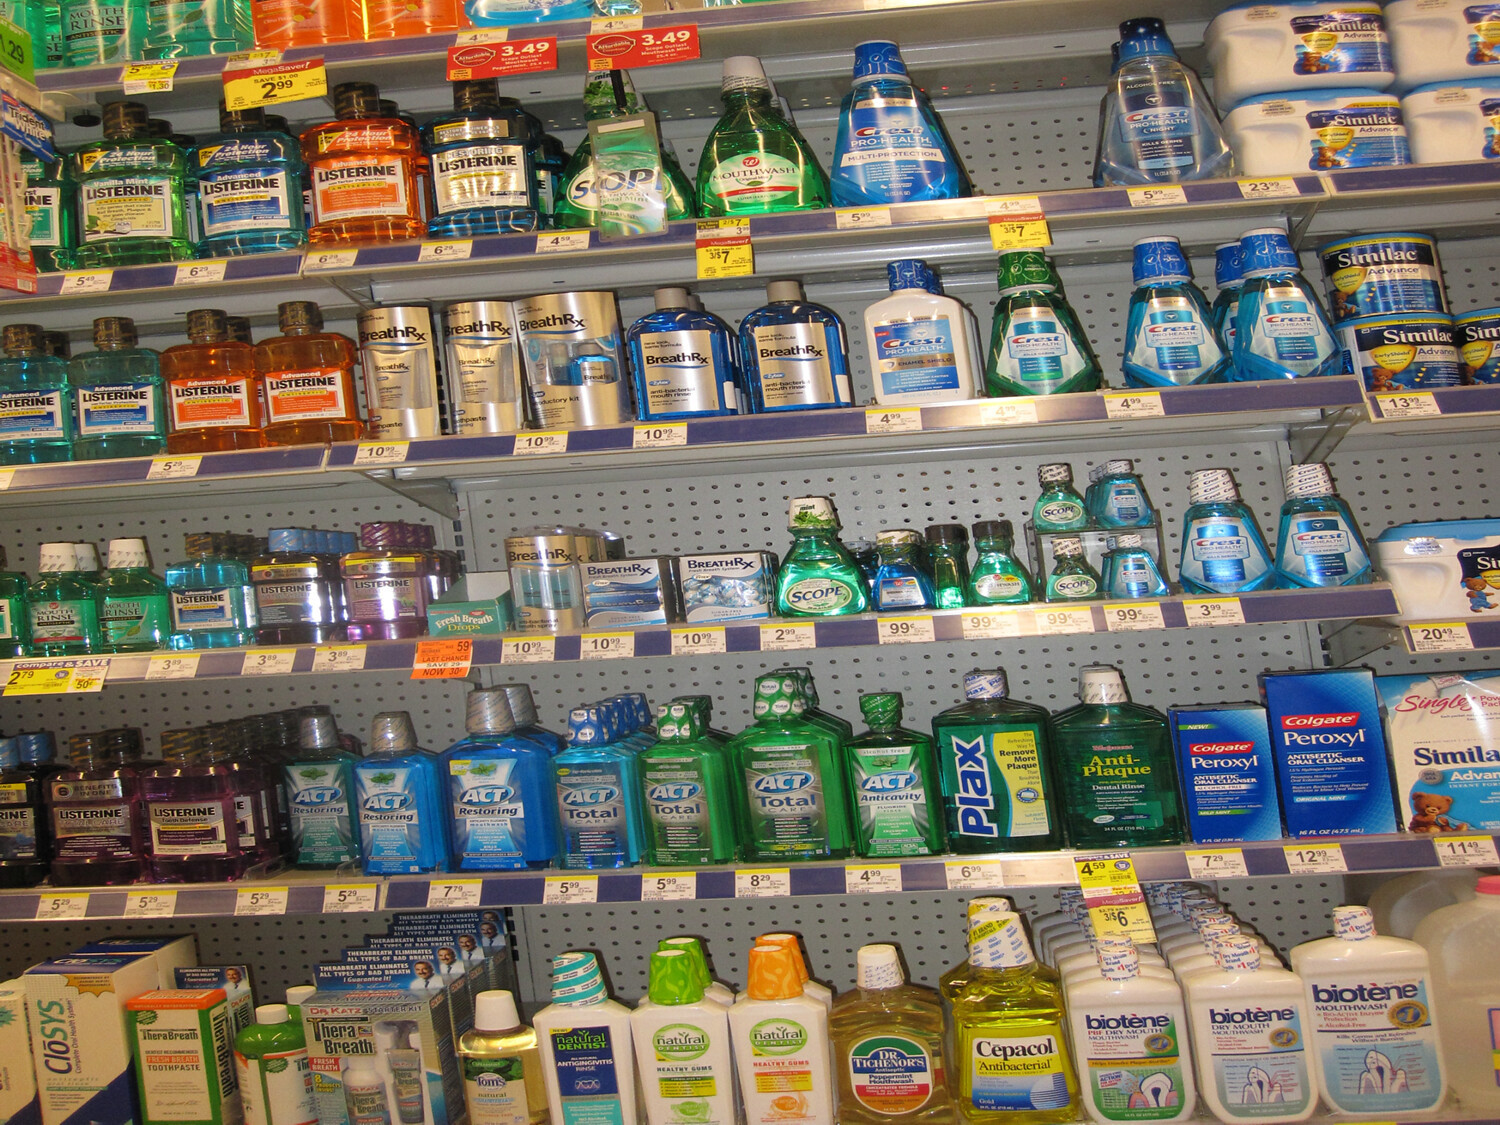 A variety of mouthwash options on a store shelf